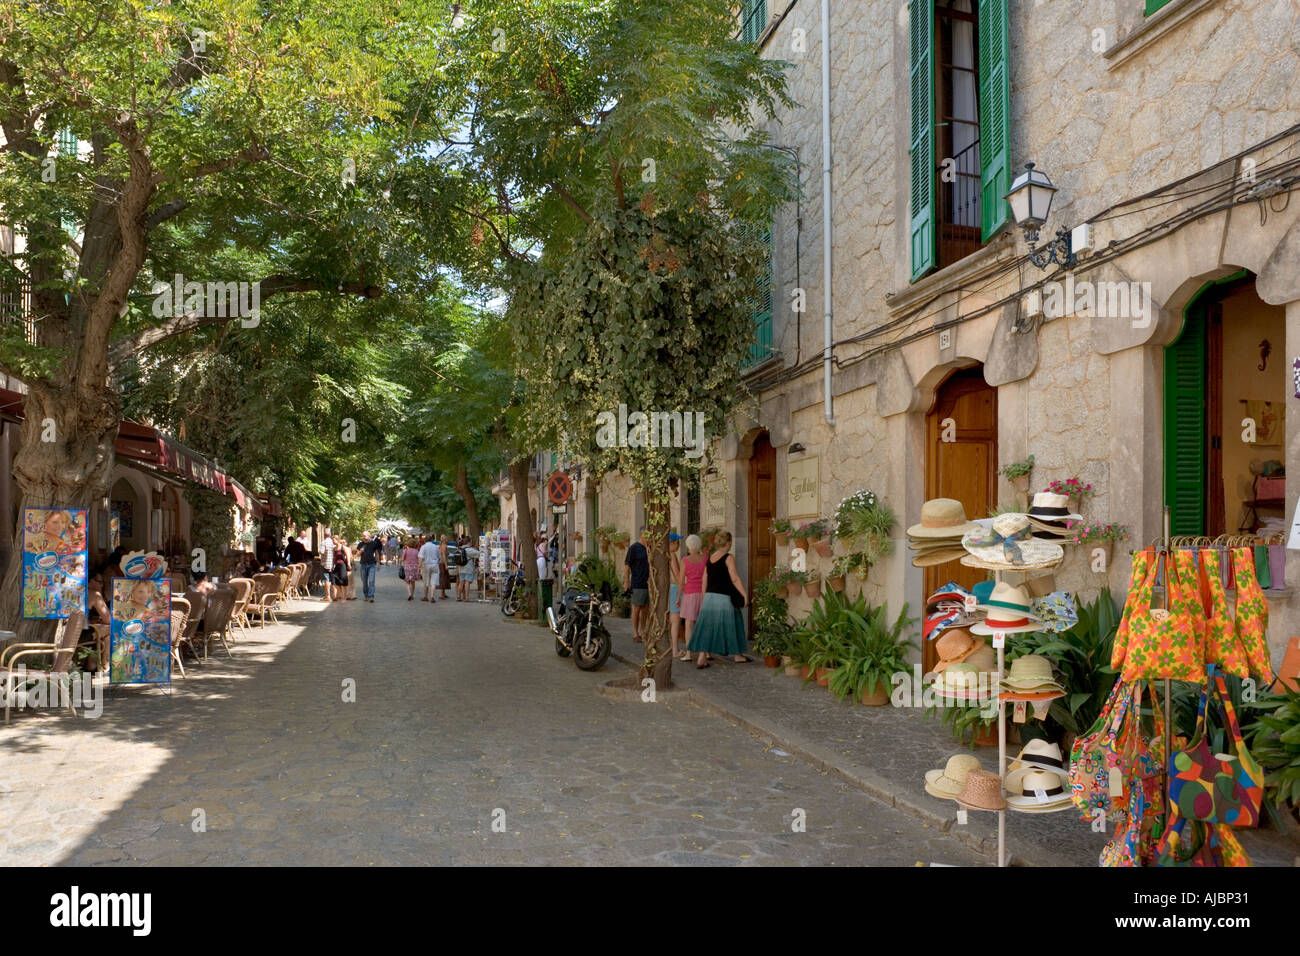 Shops on the main street in the centre of the old town, Valldemossa, West Coast, Mallorca, Spain - Stock Image